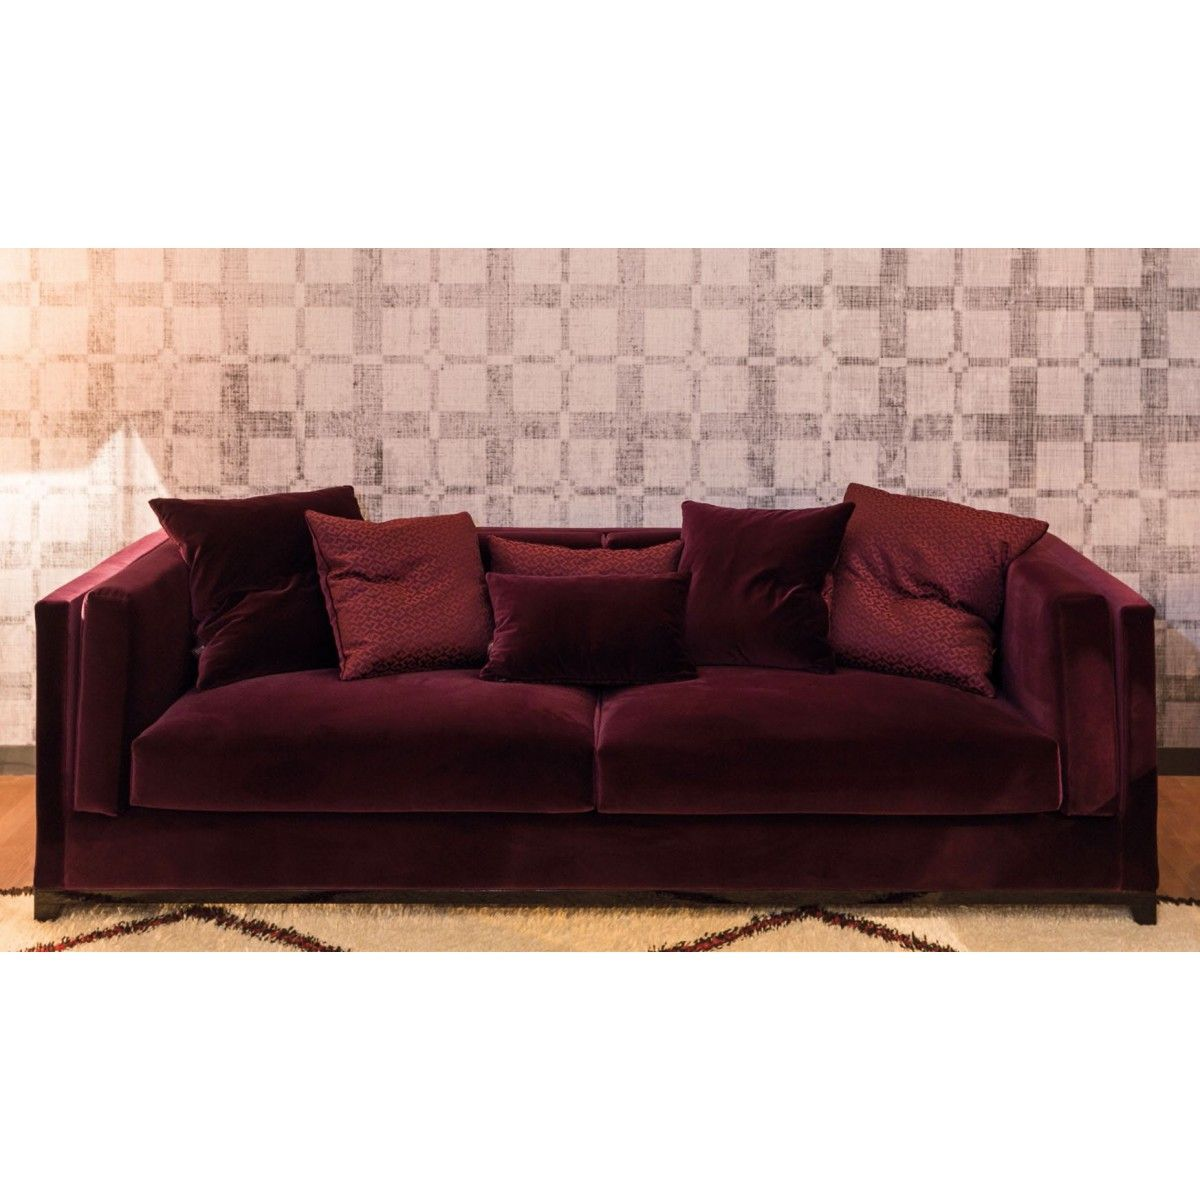 sofas Albert Sofa Sofa, Sofas, Luxury sofa